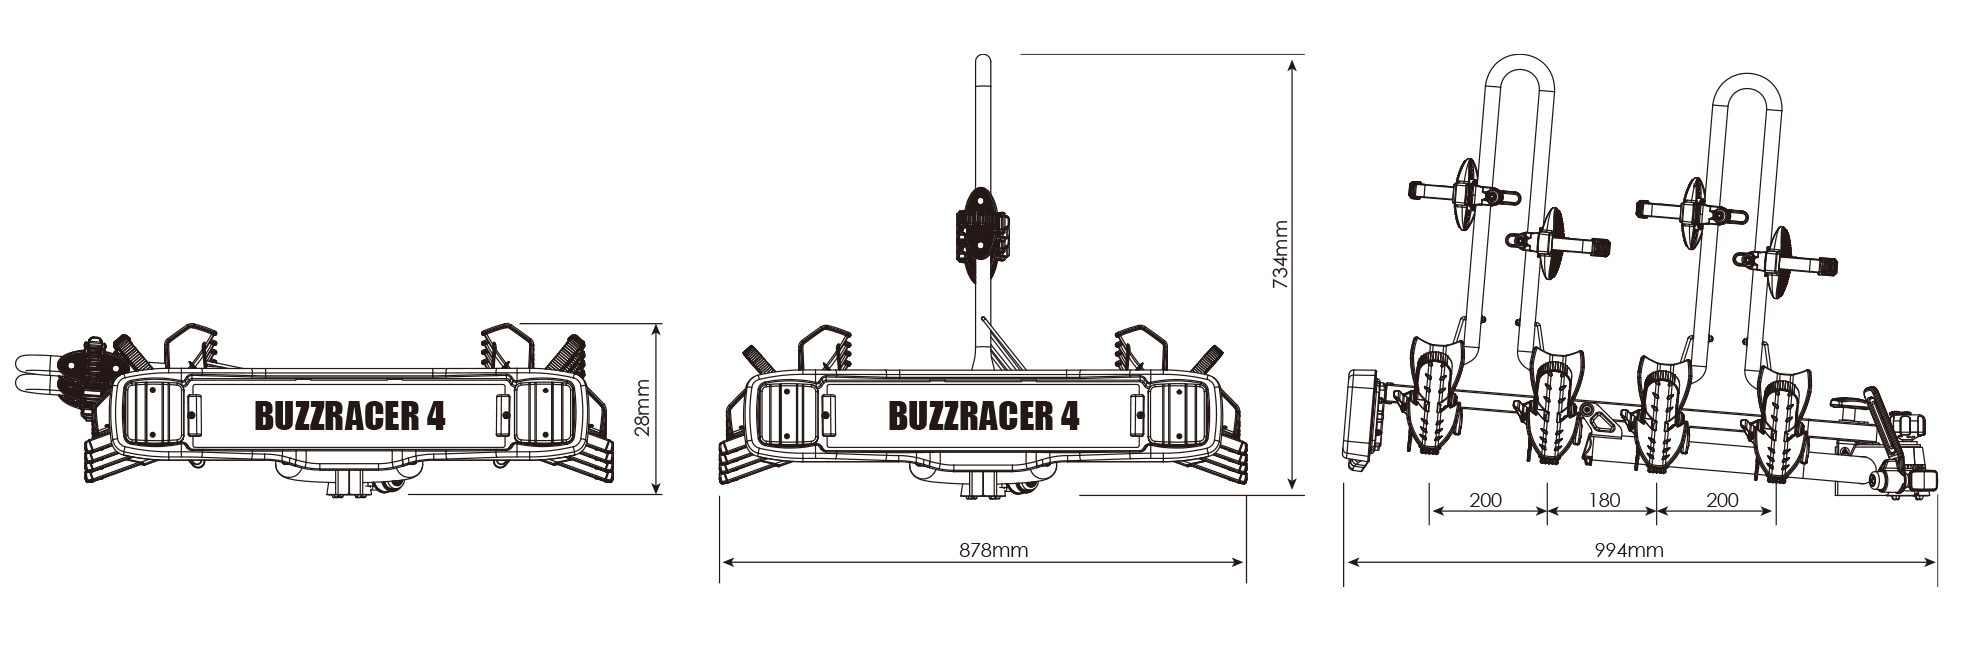 BUZZRACK BuzzRacer 4 technical specifications